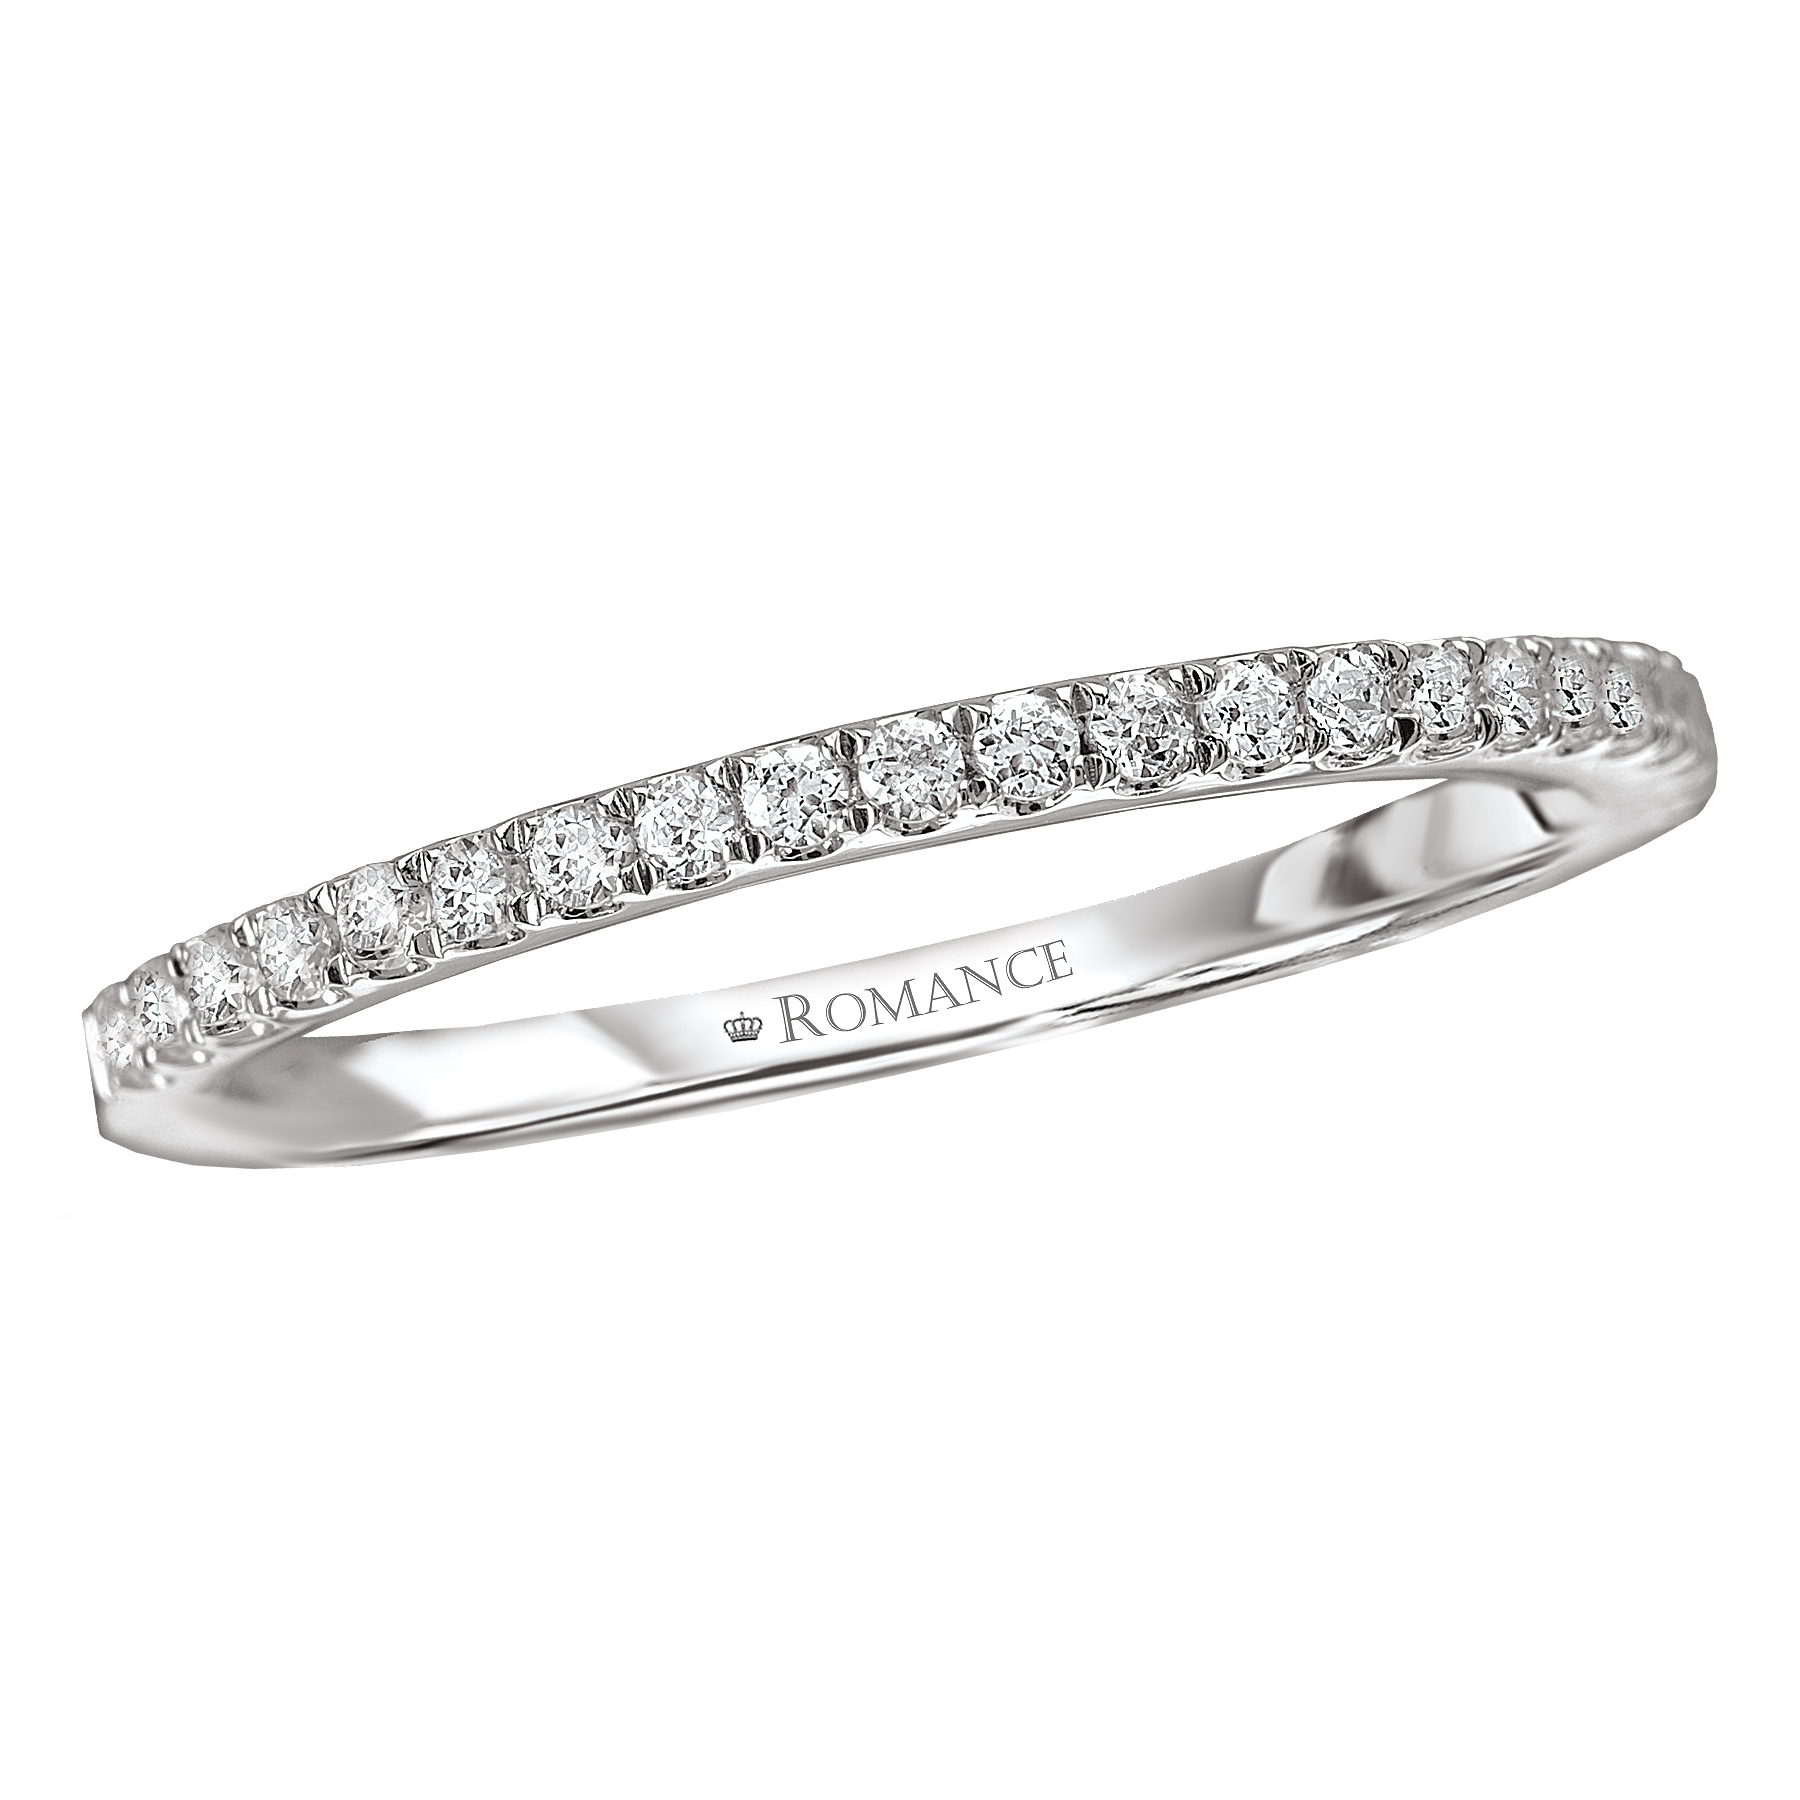 Romance Wedding Bands 117246-W product image